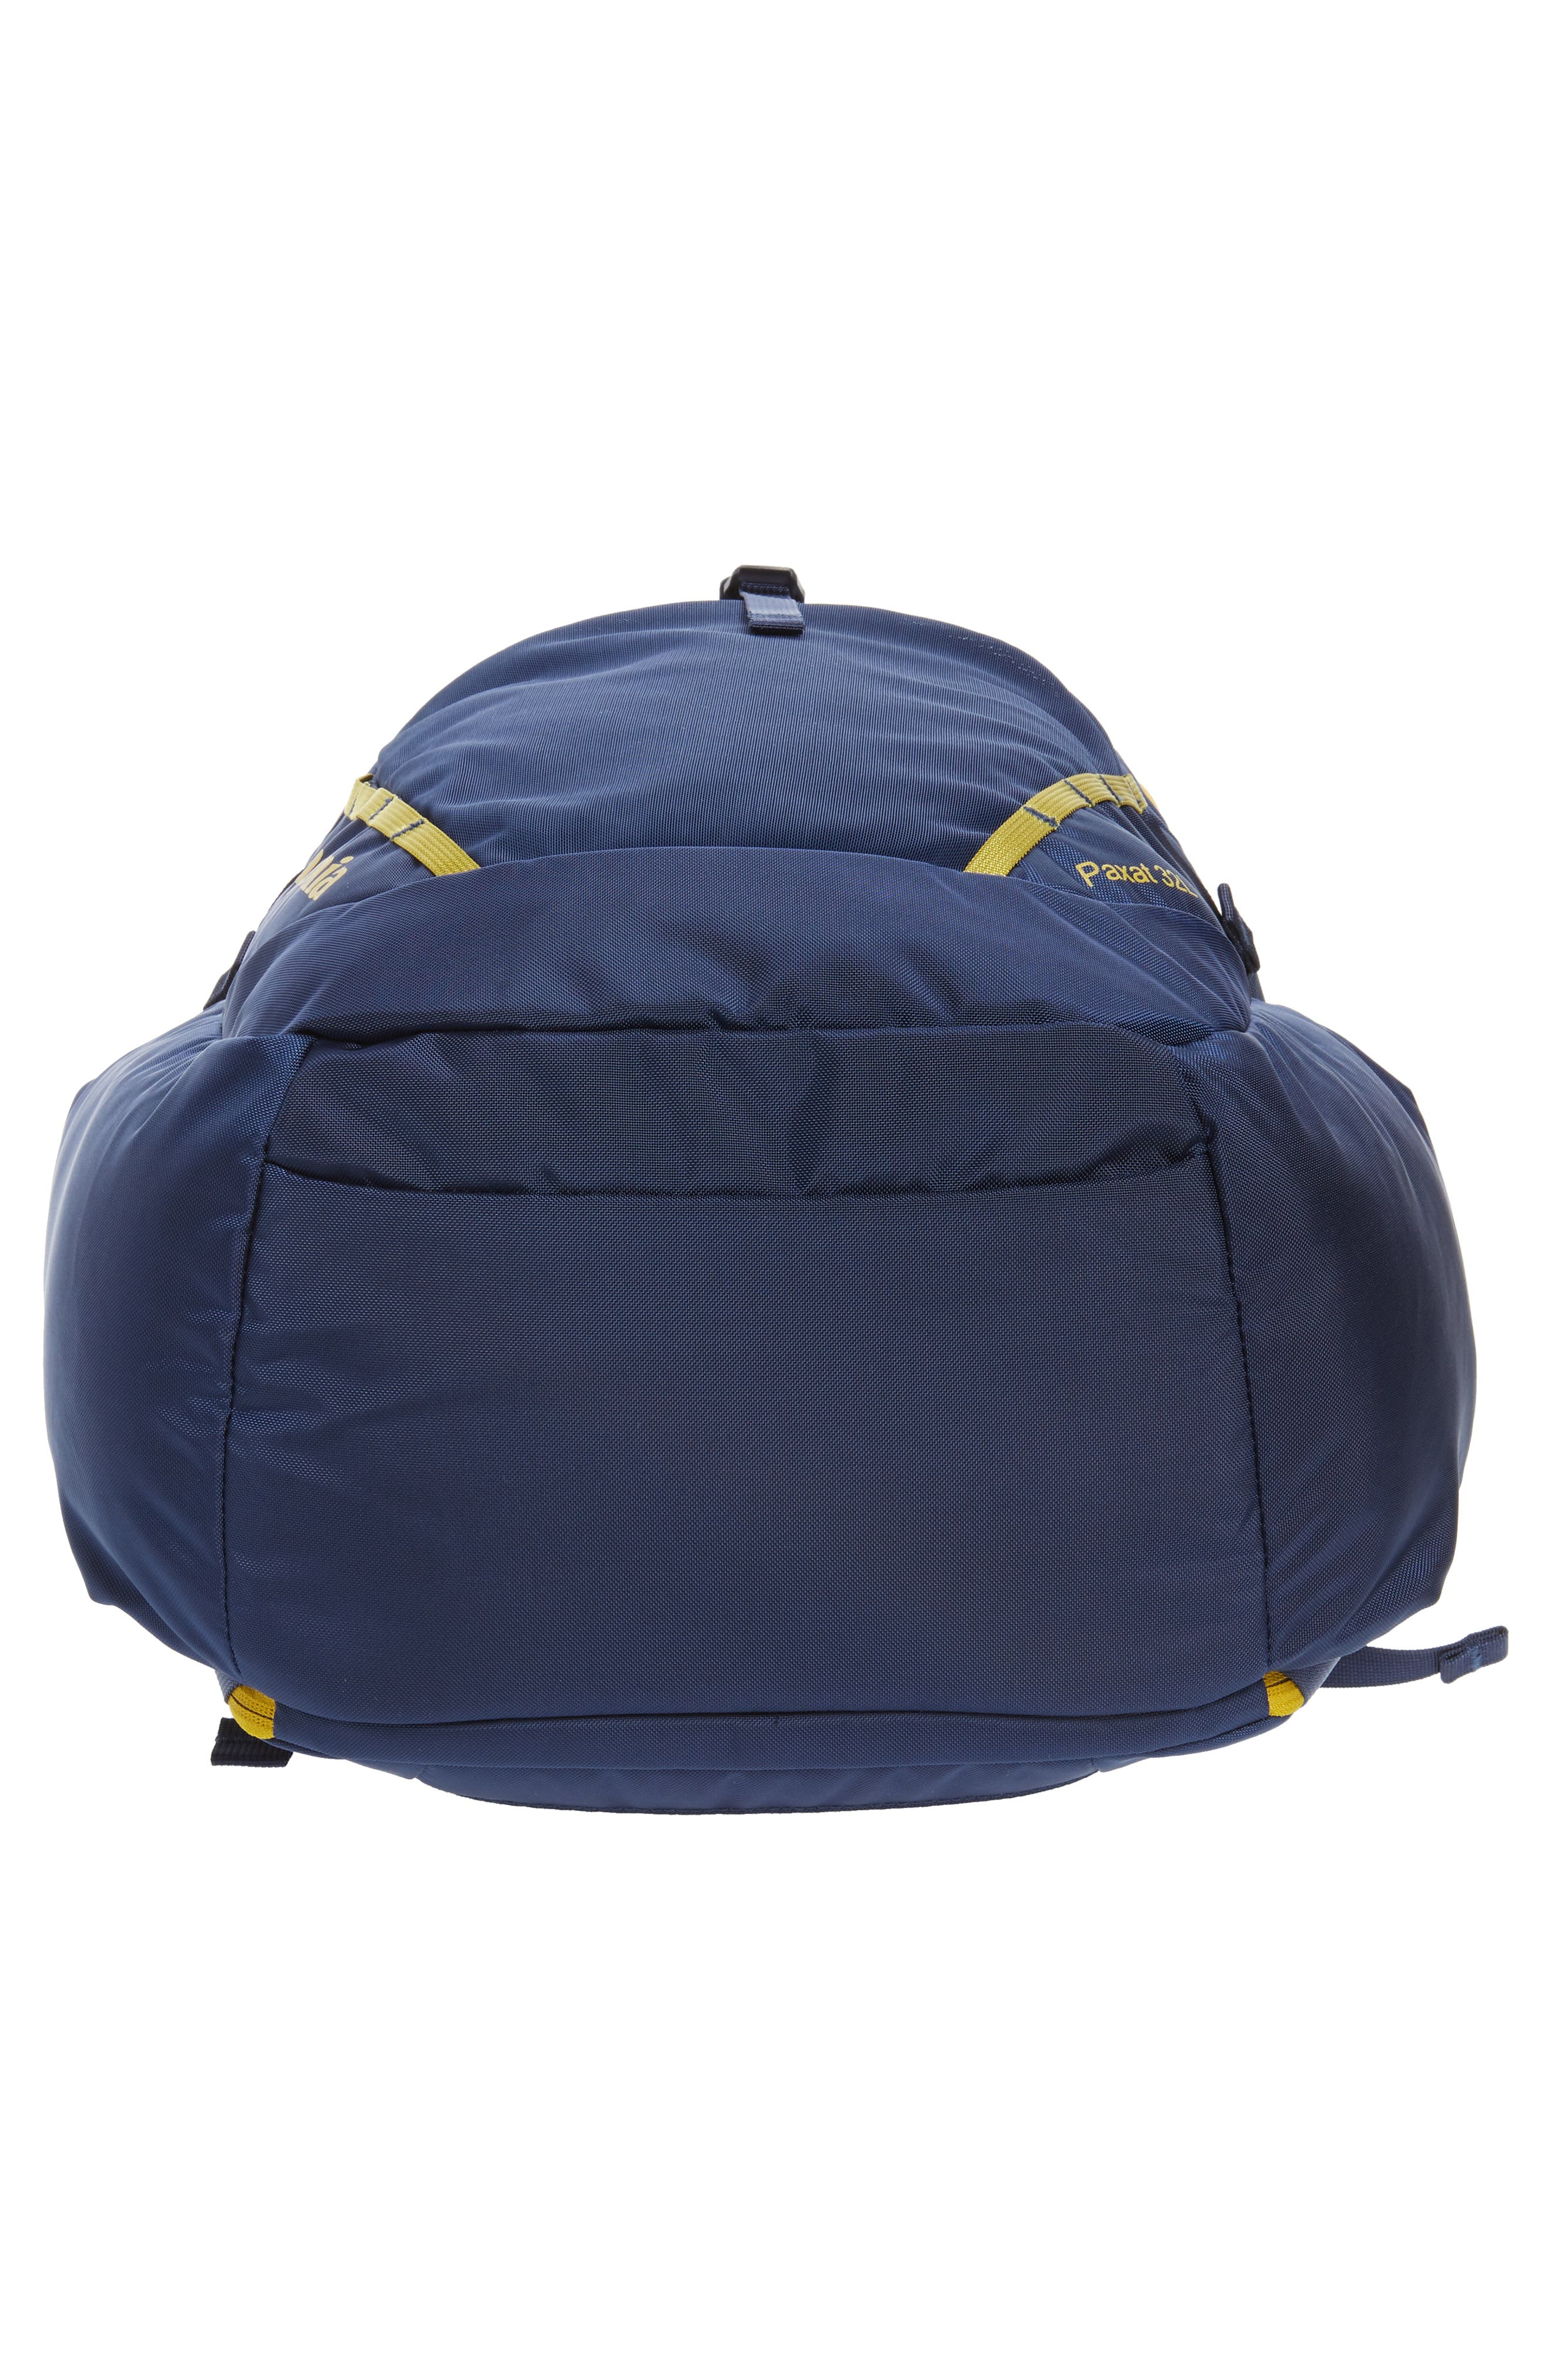 Paxat 32-Liter Backpack,                             Alternate thumbnail 6, color,                             CLASSIC NAVY